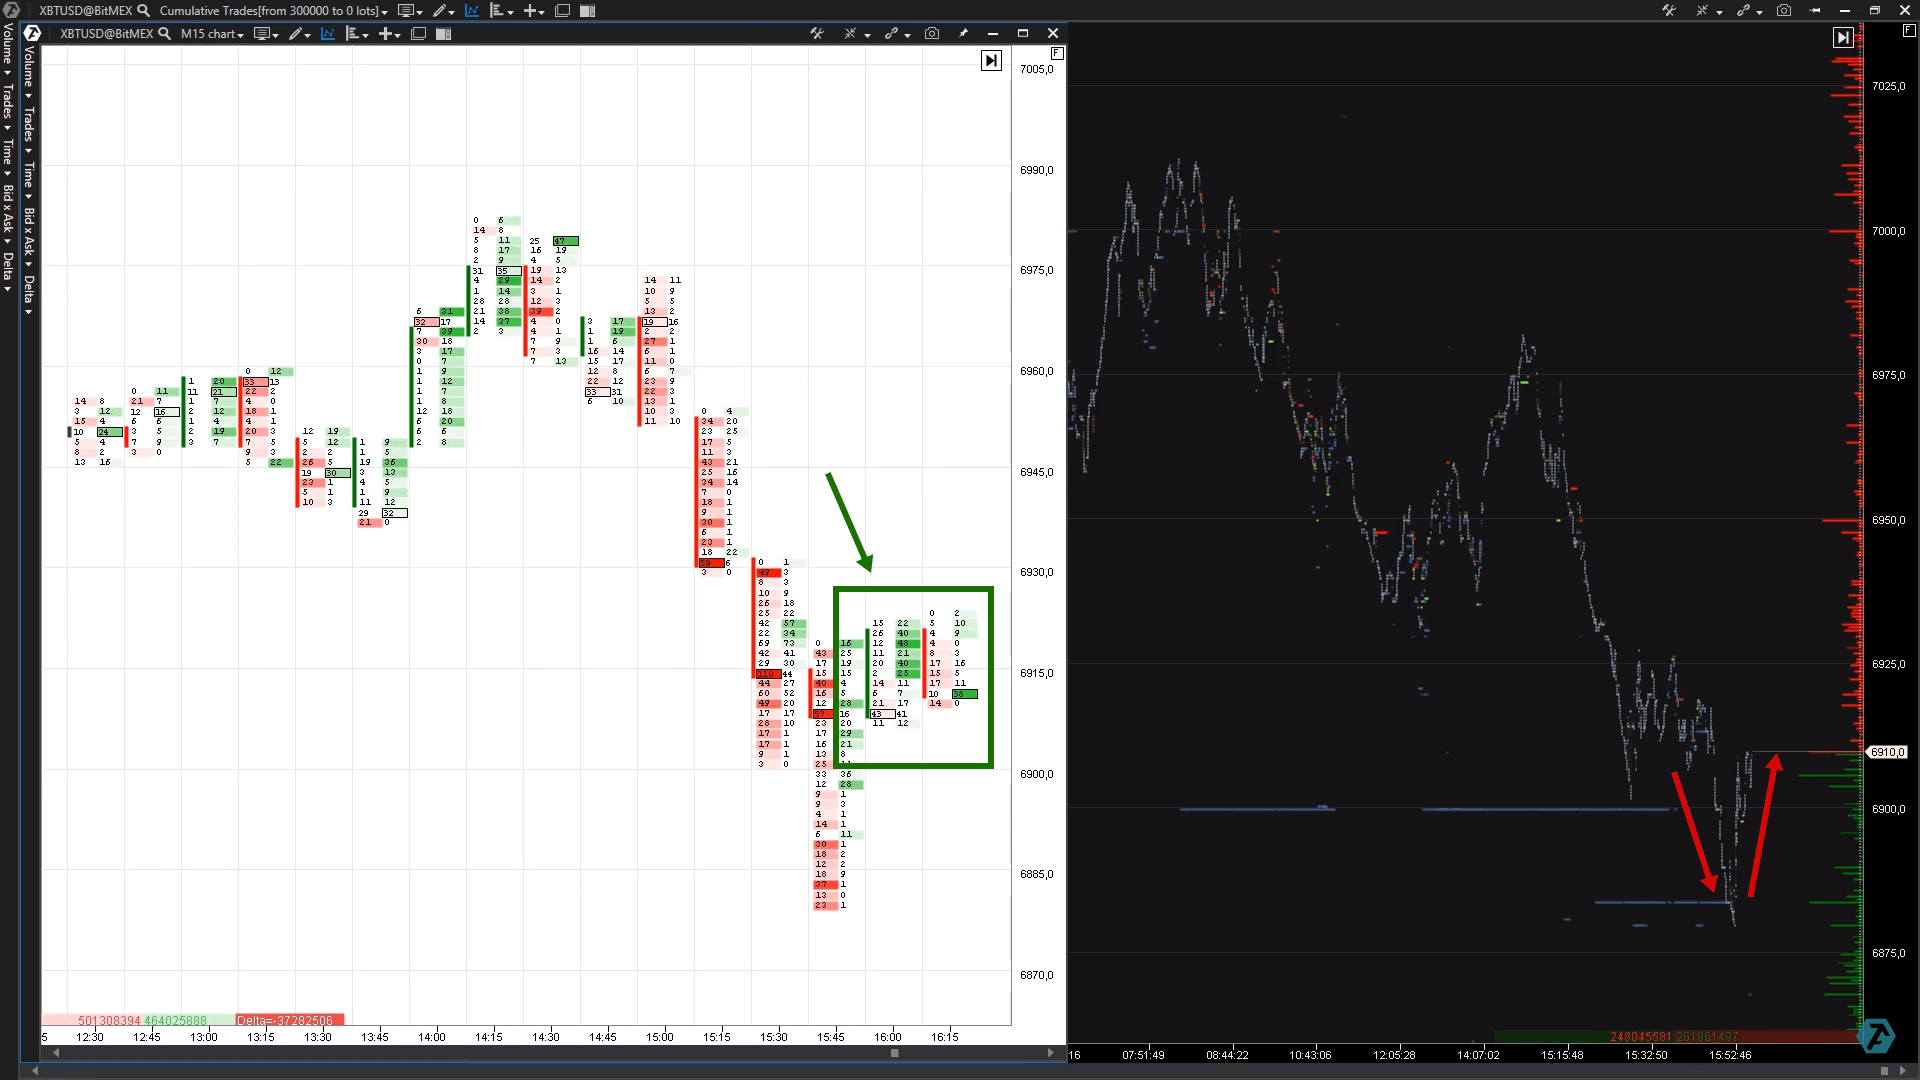 Very many sells had emerged at the breakout of the 6900 DOM Level and were engulfed